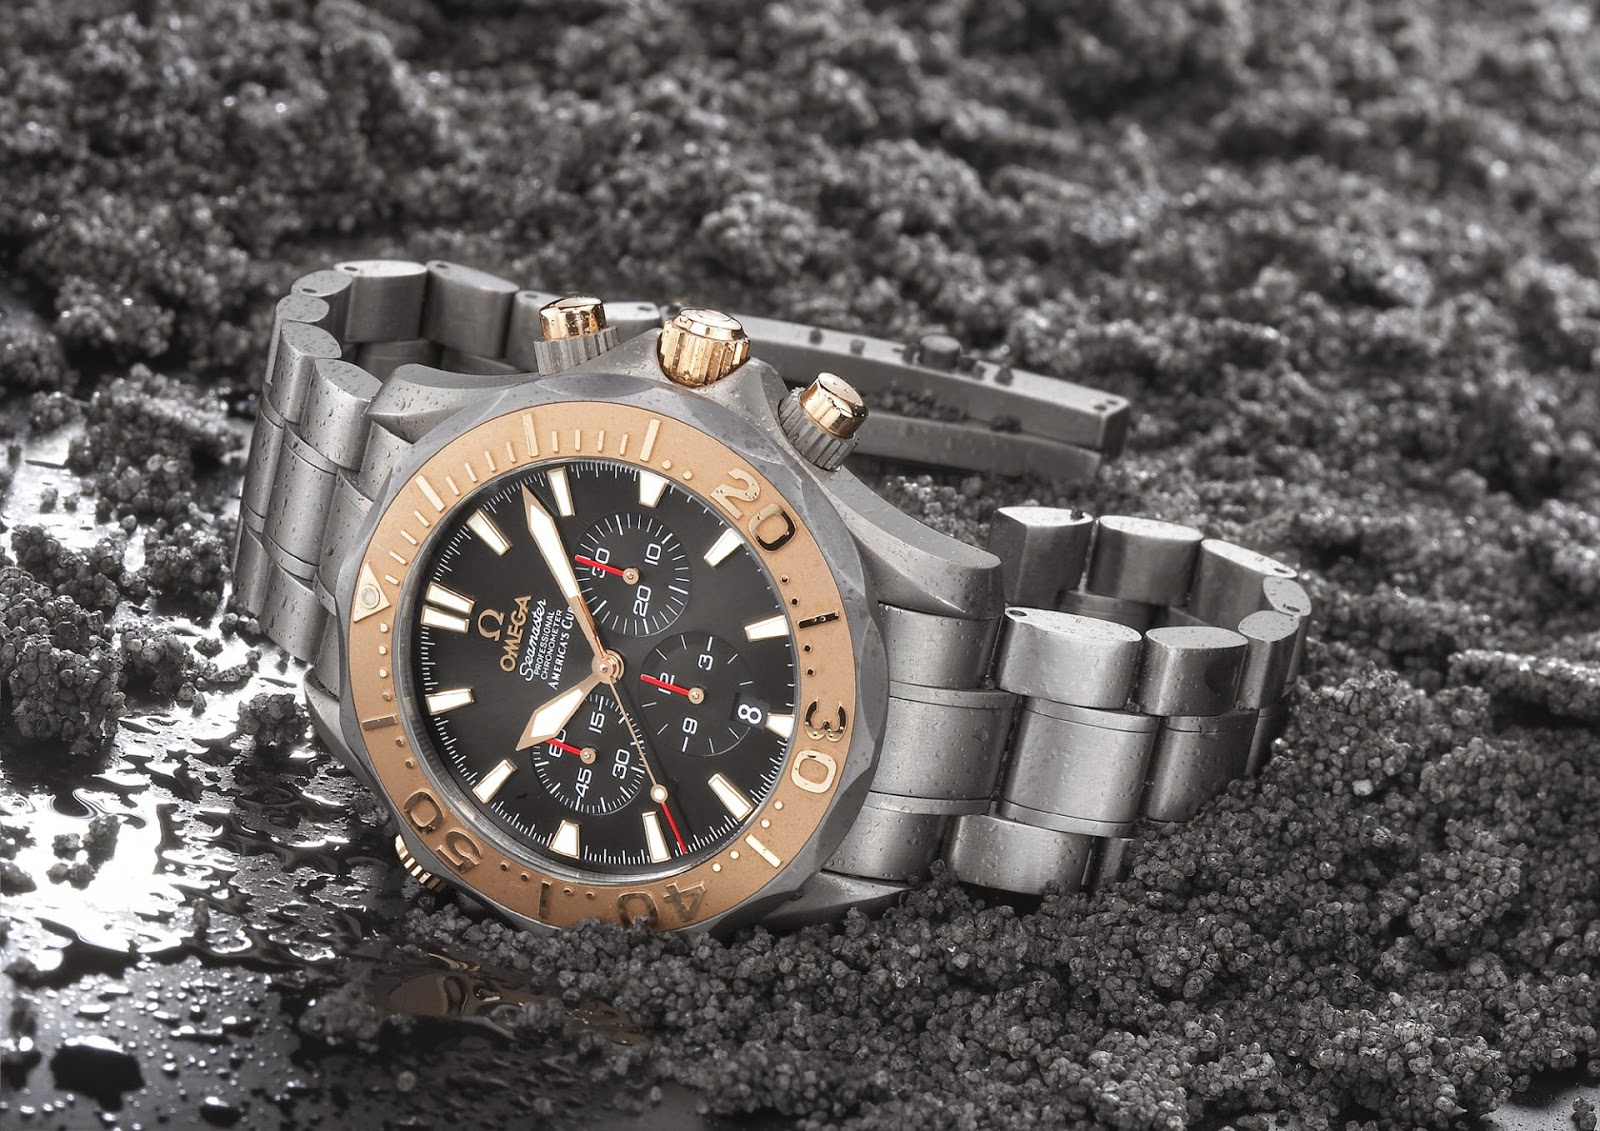 OMEGA America's Cup Collection 2002 - The OMEGA America's Cup Chronograph and the America's Cup Racing Chronograph